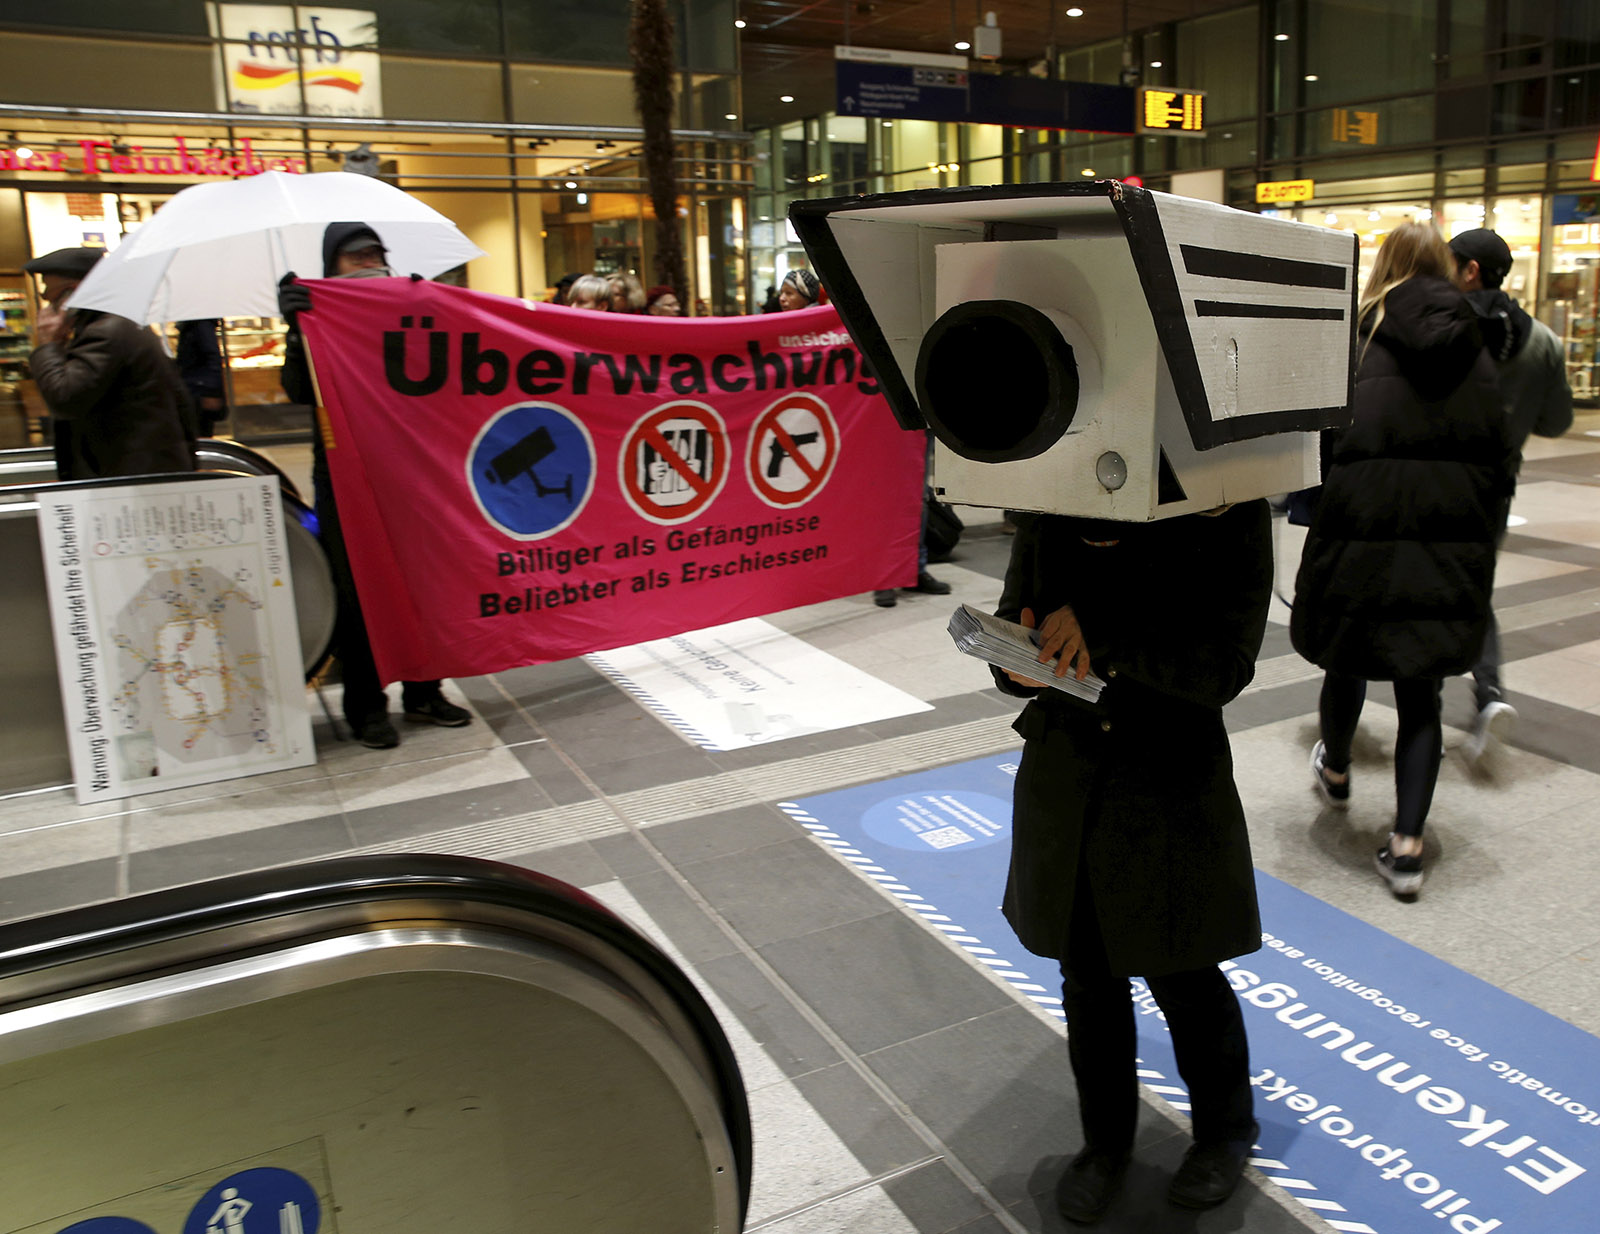 A demonstrator dressed as a security camera at an anti-surveillance protest, Berlin, November 2017